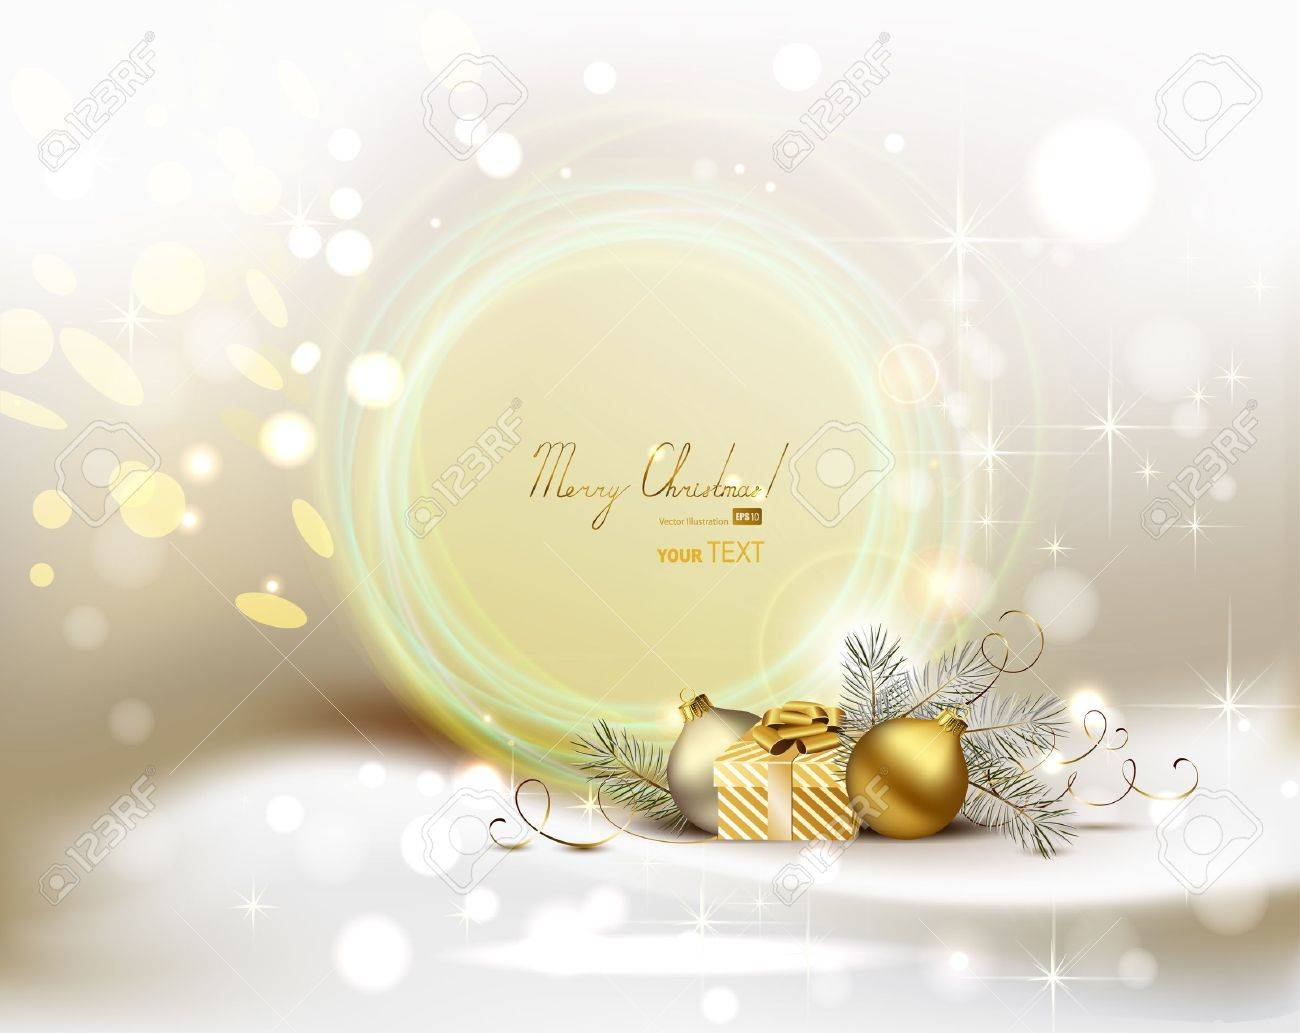 light Christmas background with two evening balls and gift - 14548590